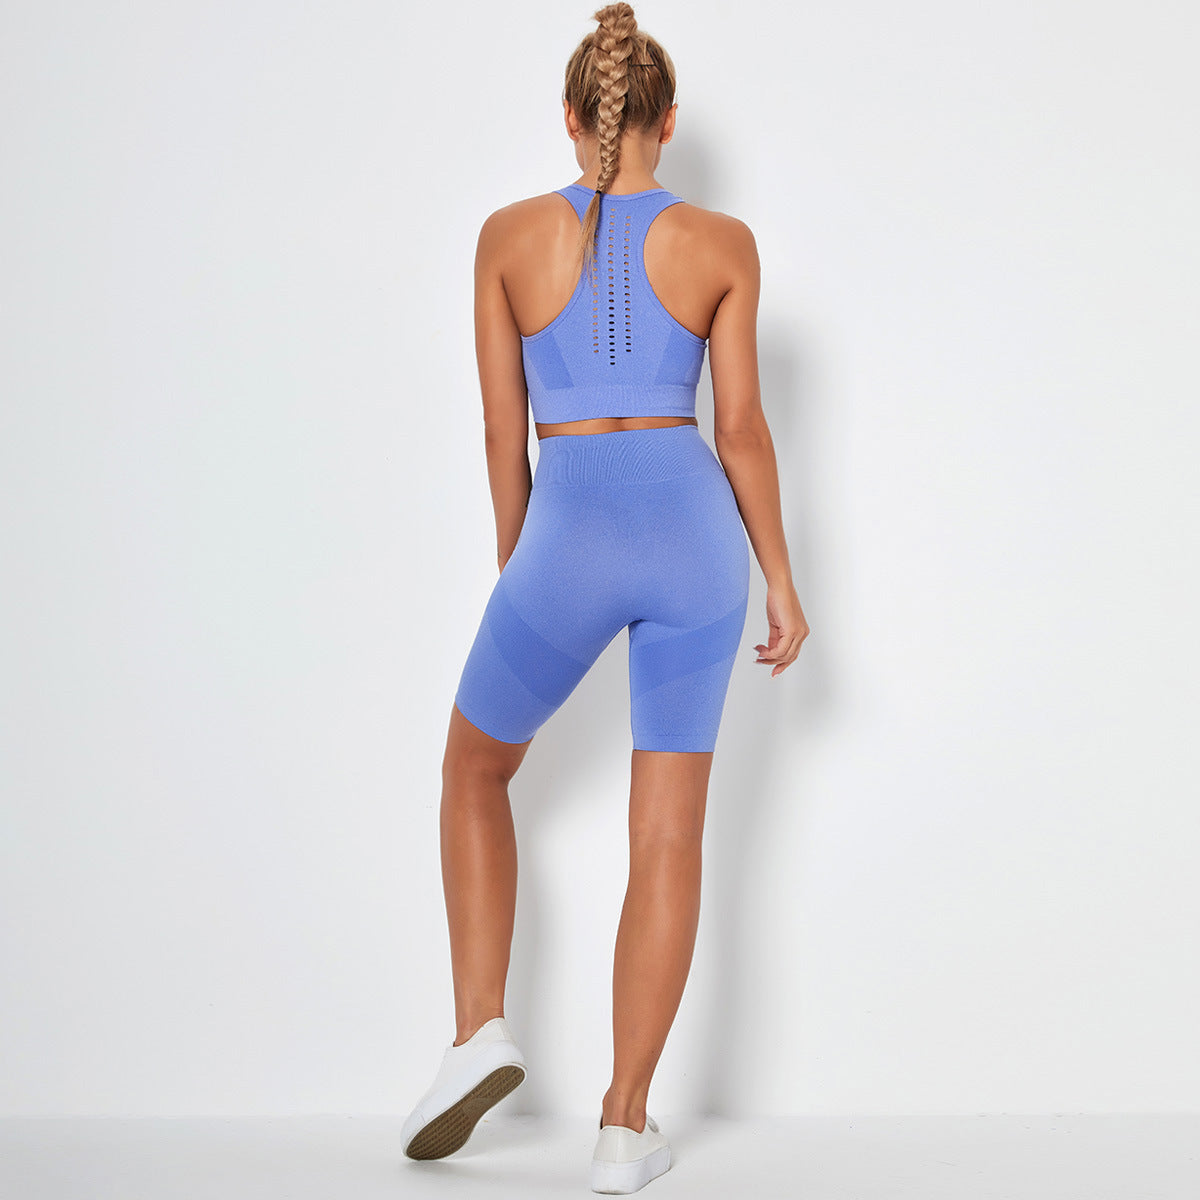 Seamless yoga outfit for women bra short royal blue